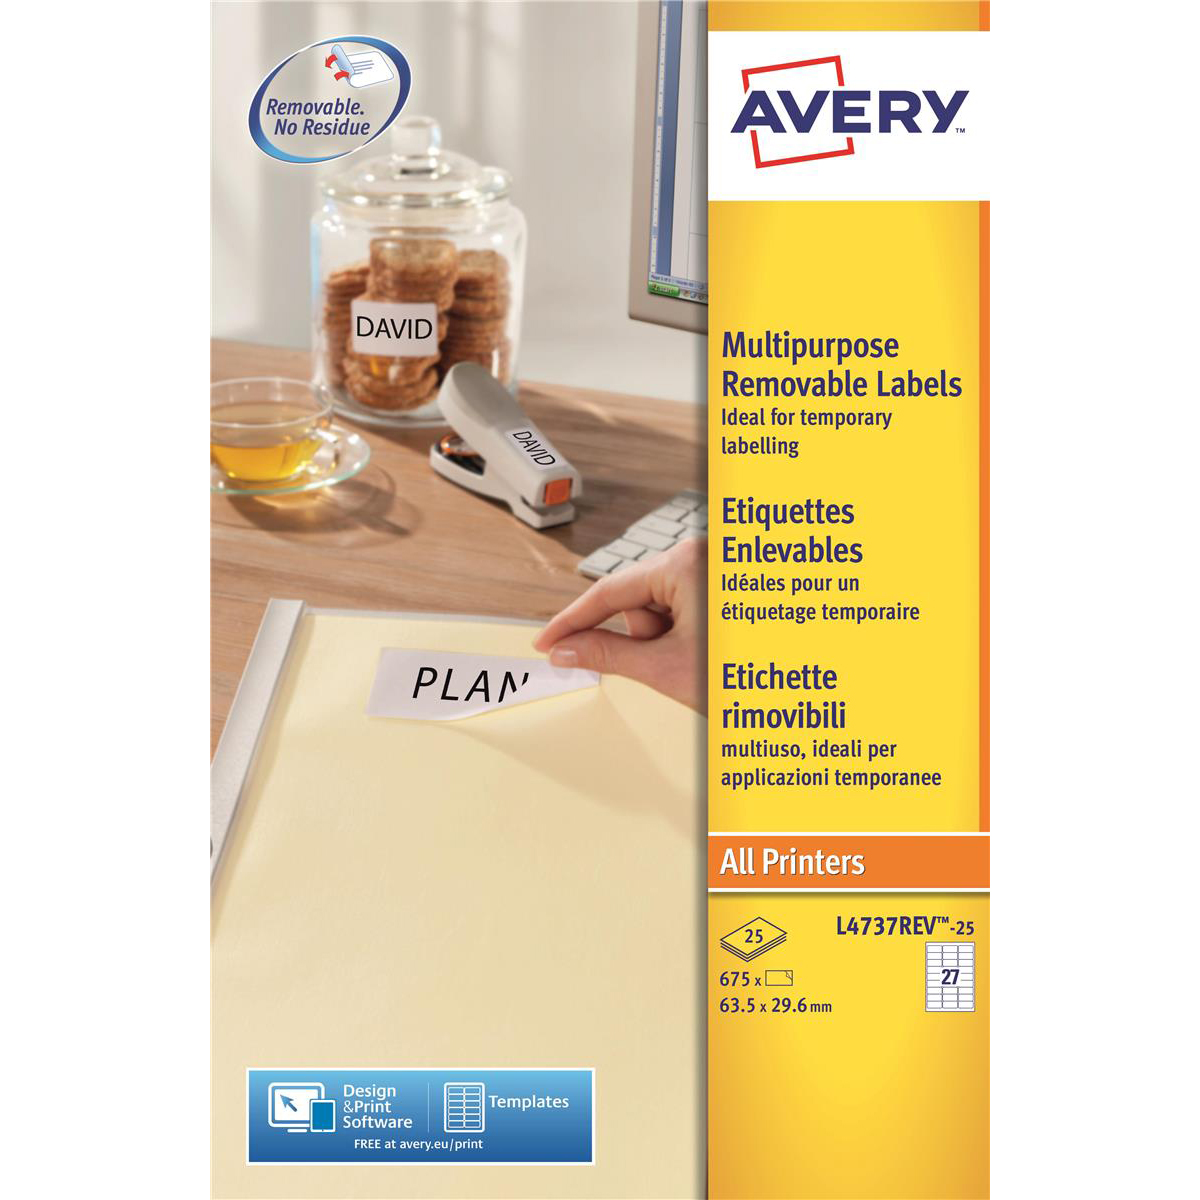 Avery Mini Multipurpose Labels Removable Laser 27 per Sheet 63.5x29.6mm White RefL4737REV-25 675 Labels